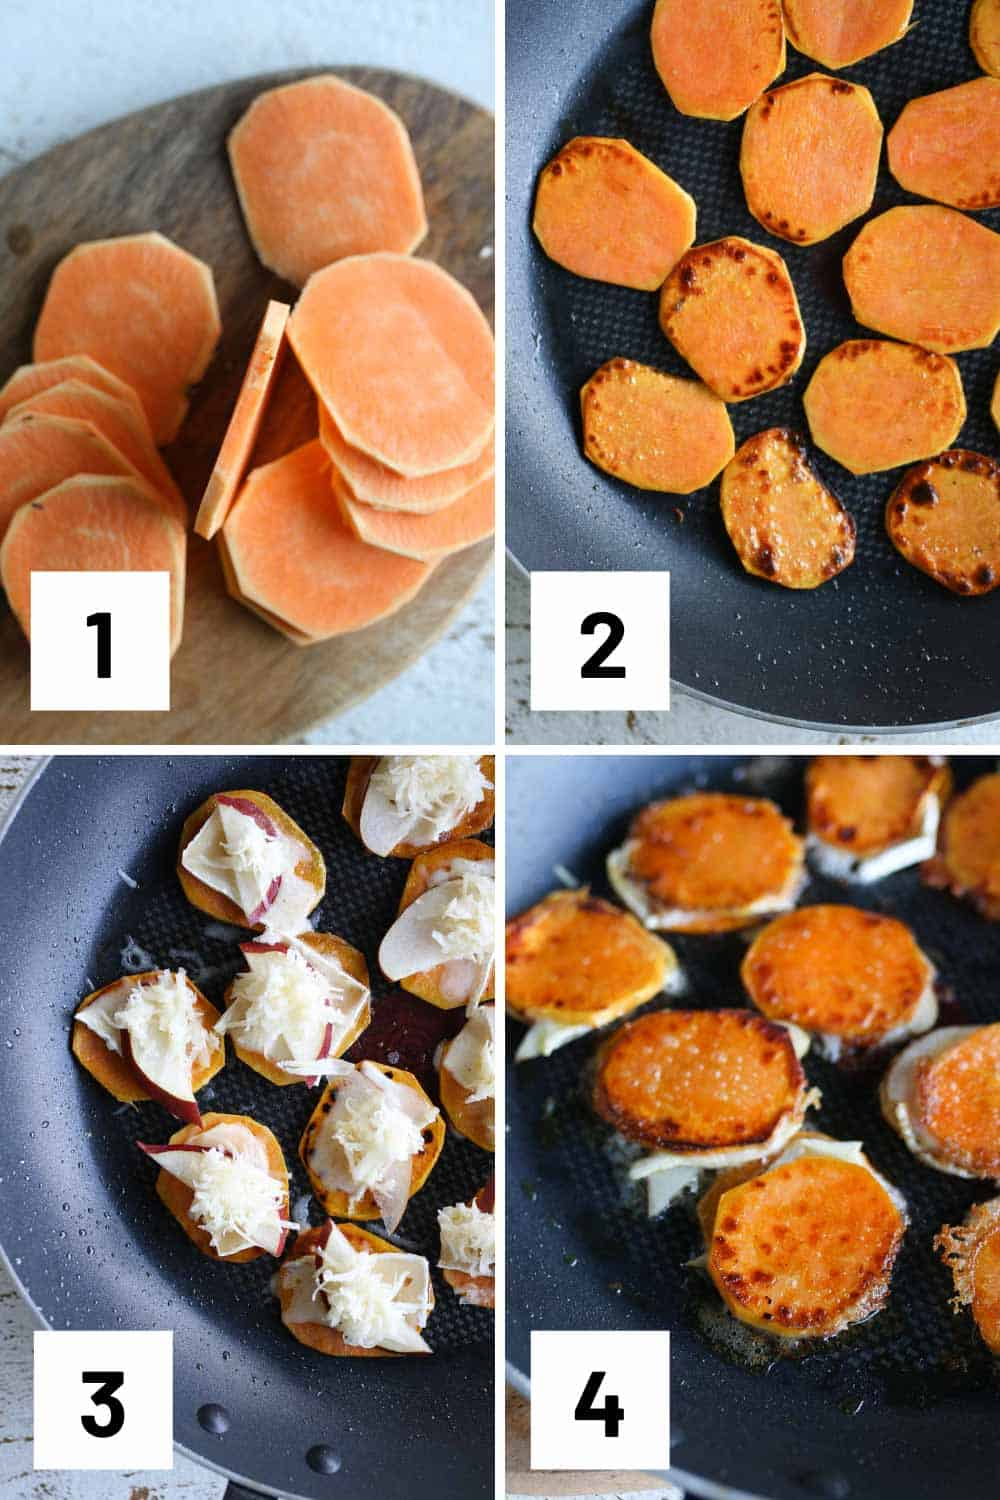 Step by step photos showing how thin to slice sweet potatoes, how to grill them, and how to assemble.